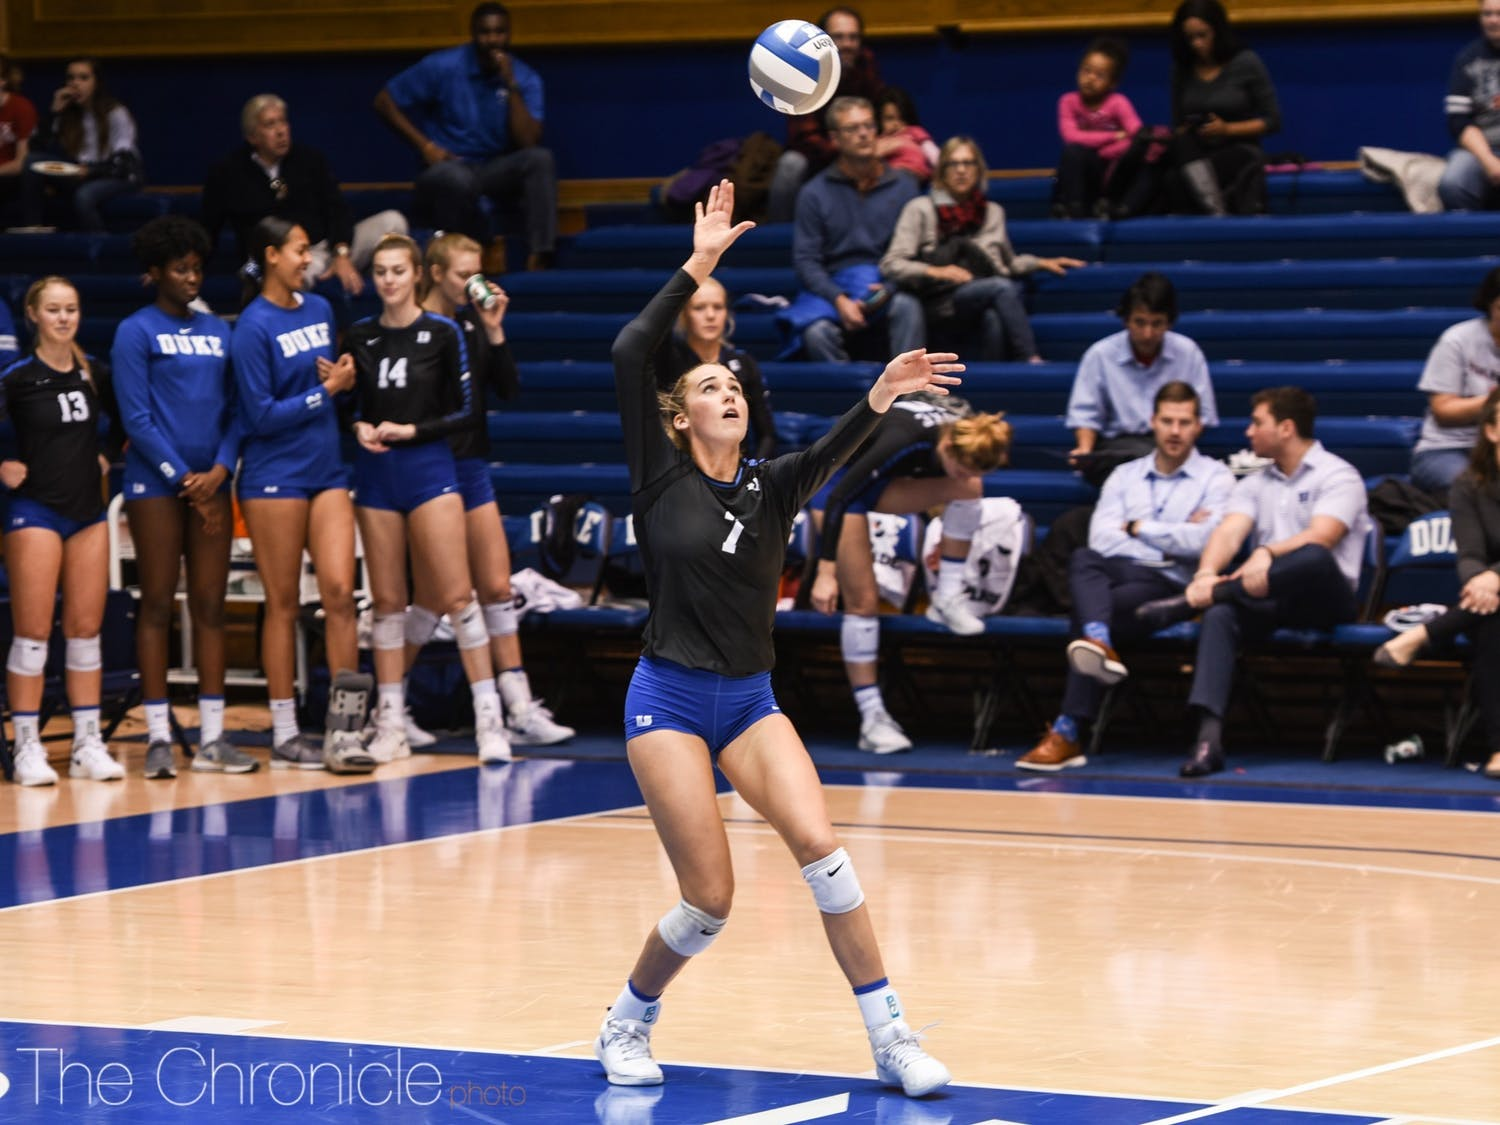 Sophomore outside hitter Gracie Johnson led Duke's offense in Payton Schwantz's absence.